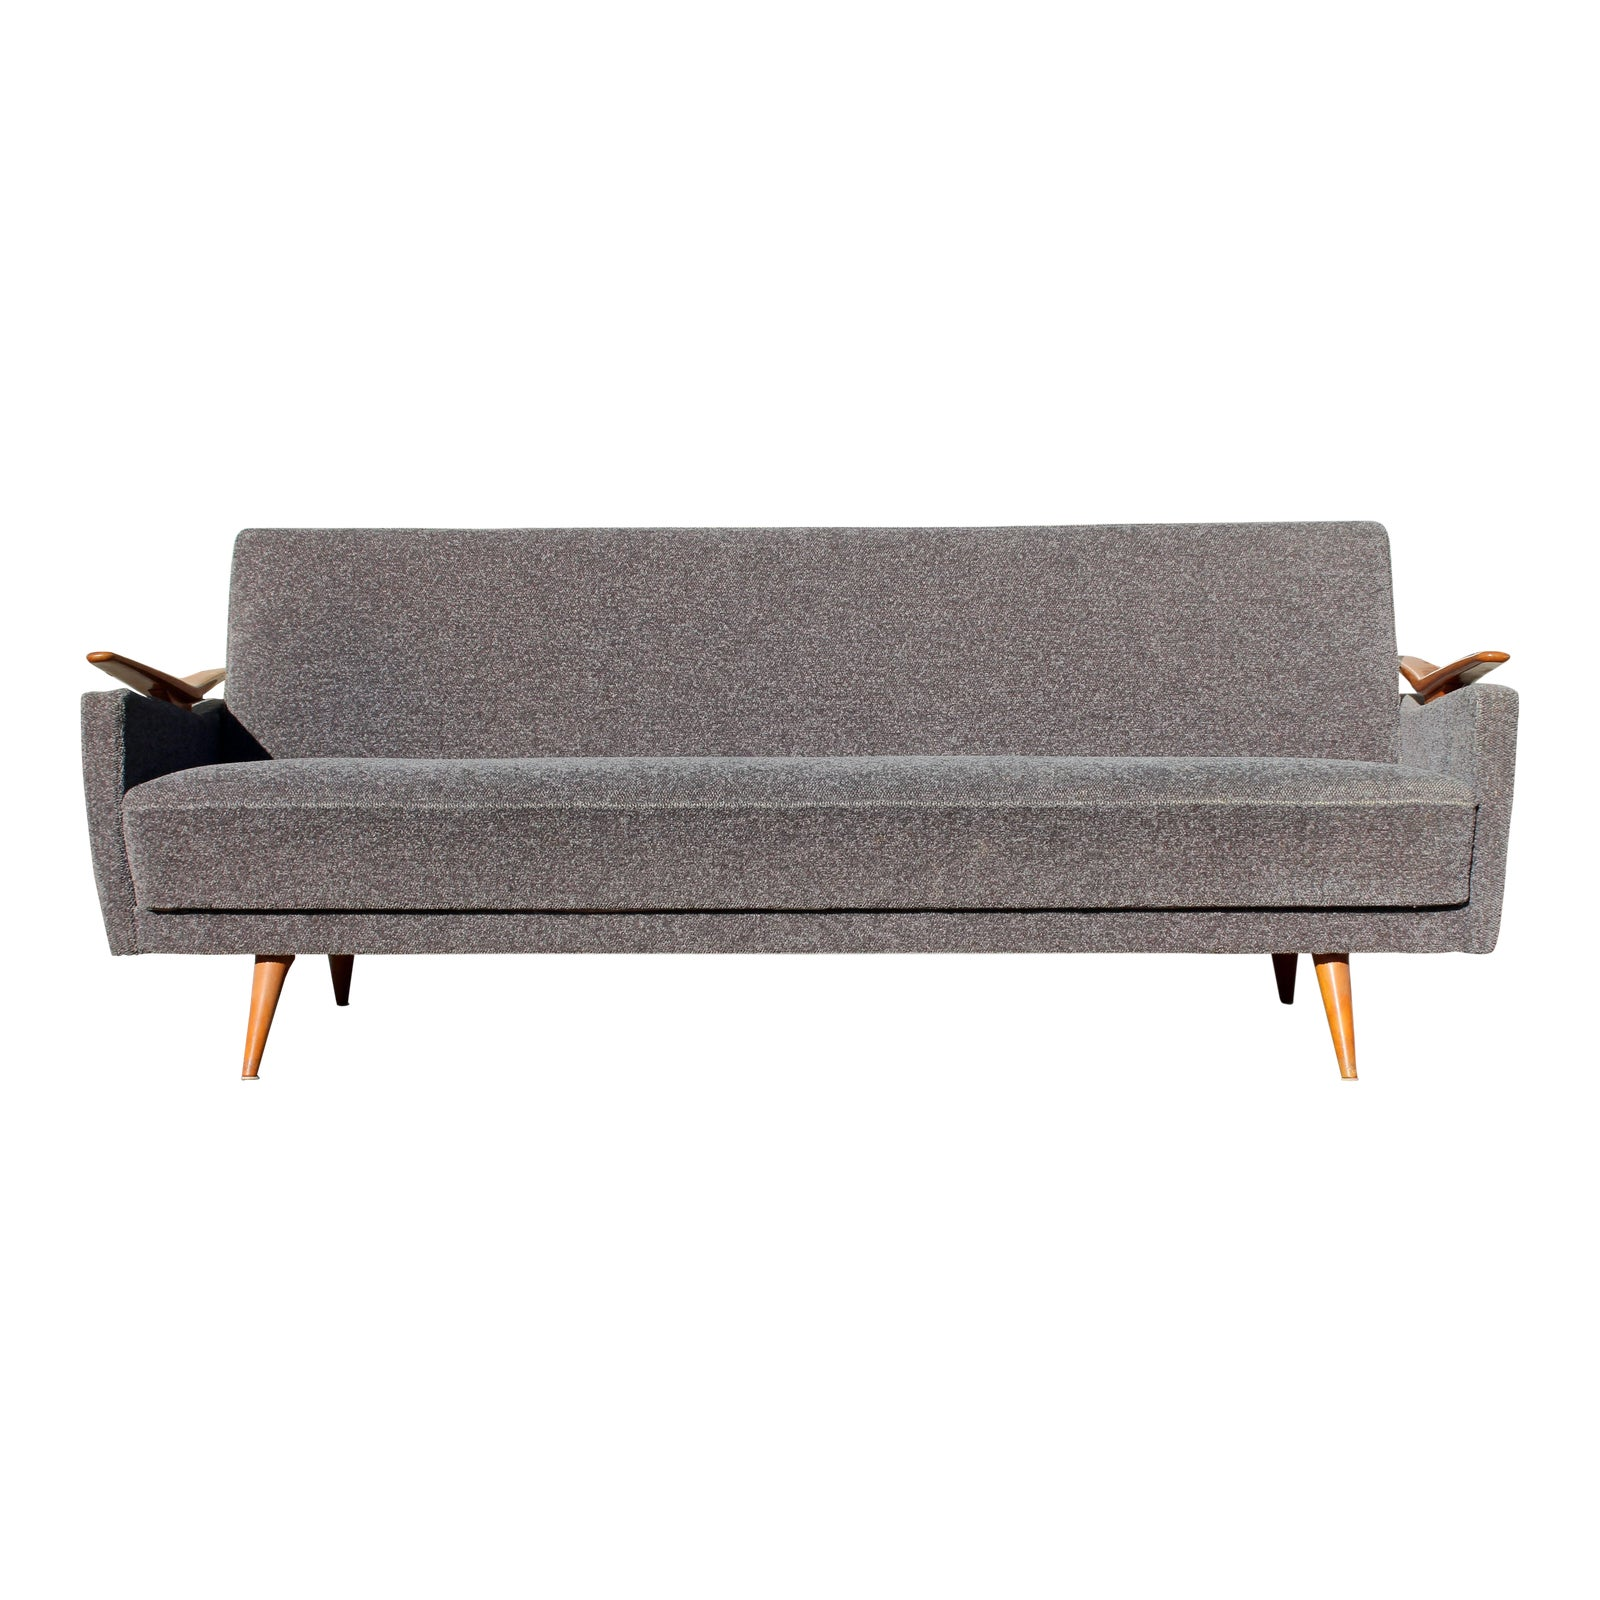 1960s Mid Century Modern Sculptural Reclining Sofa Daybed Danish